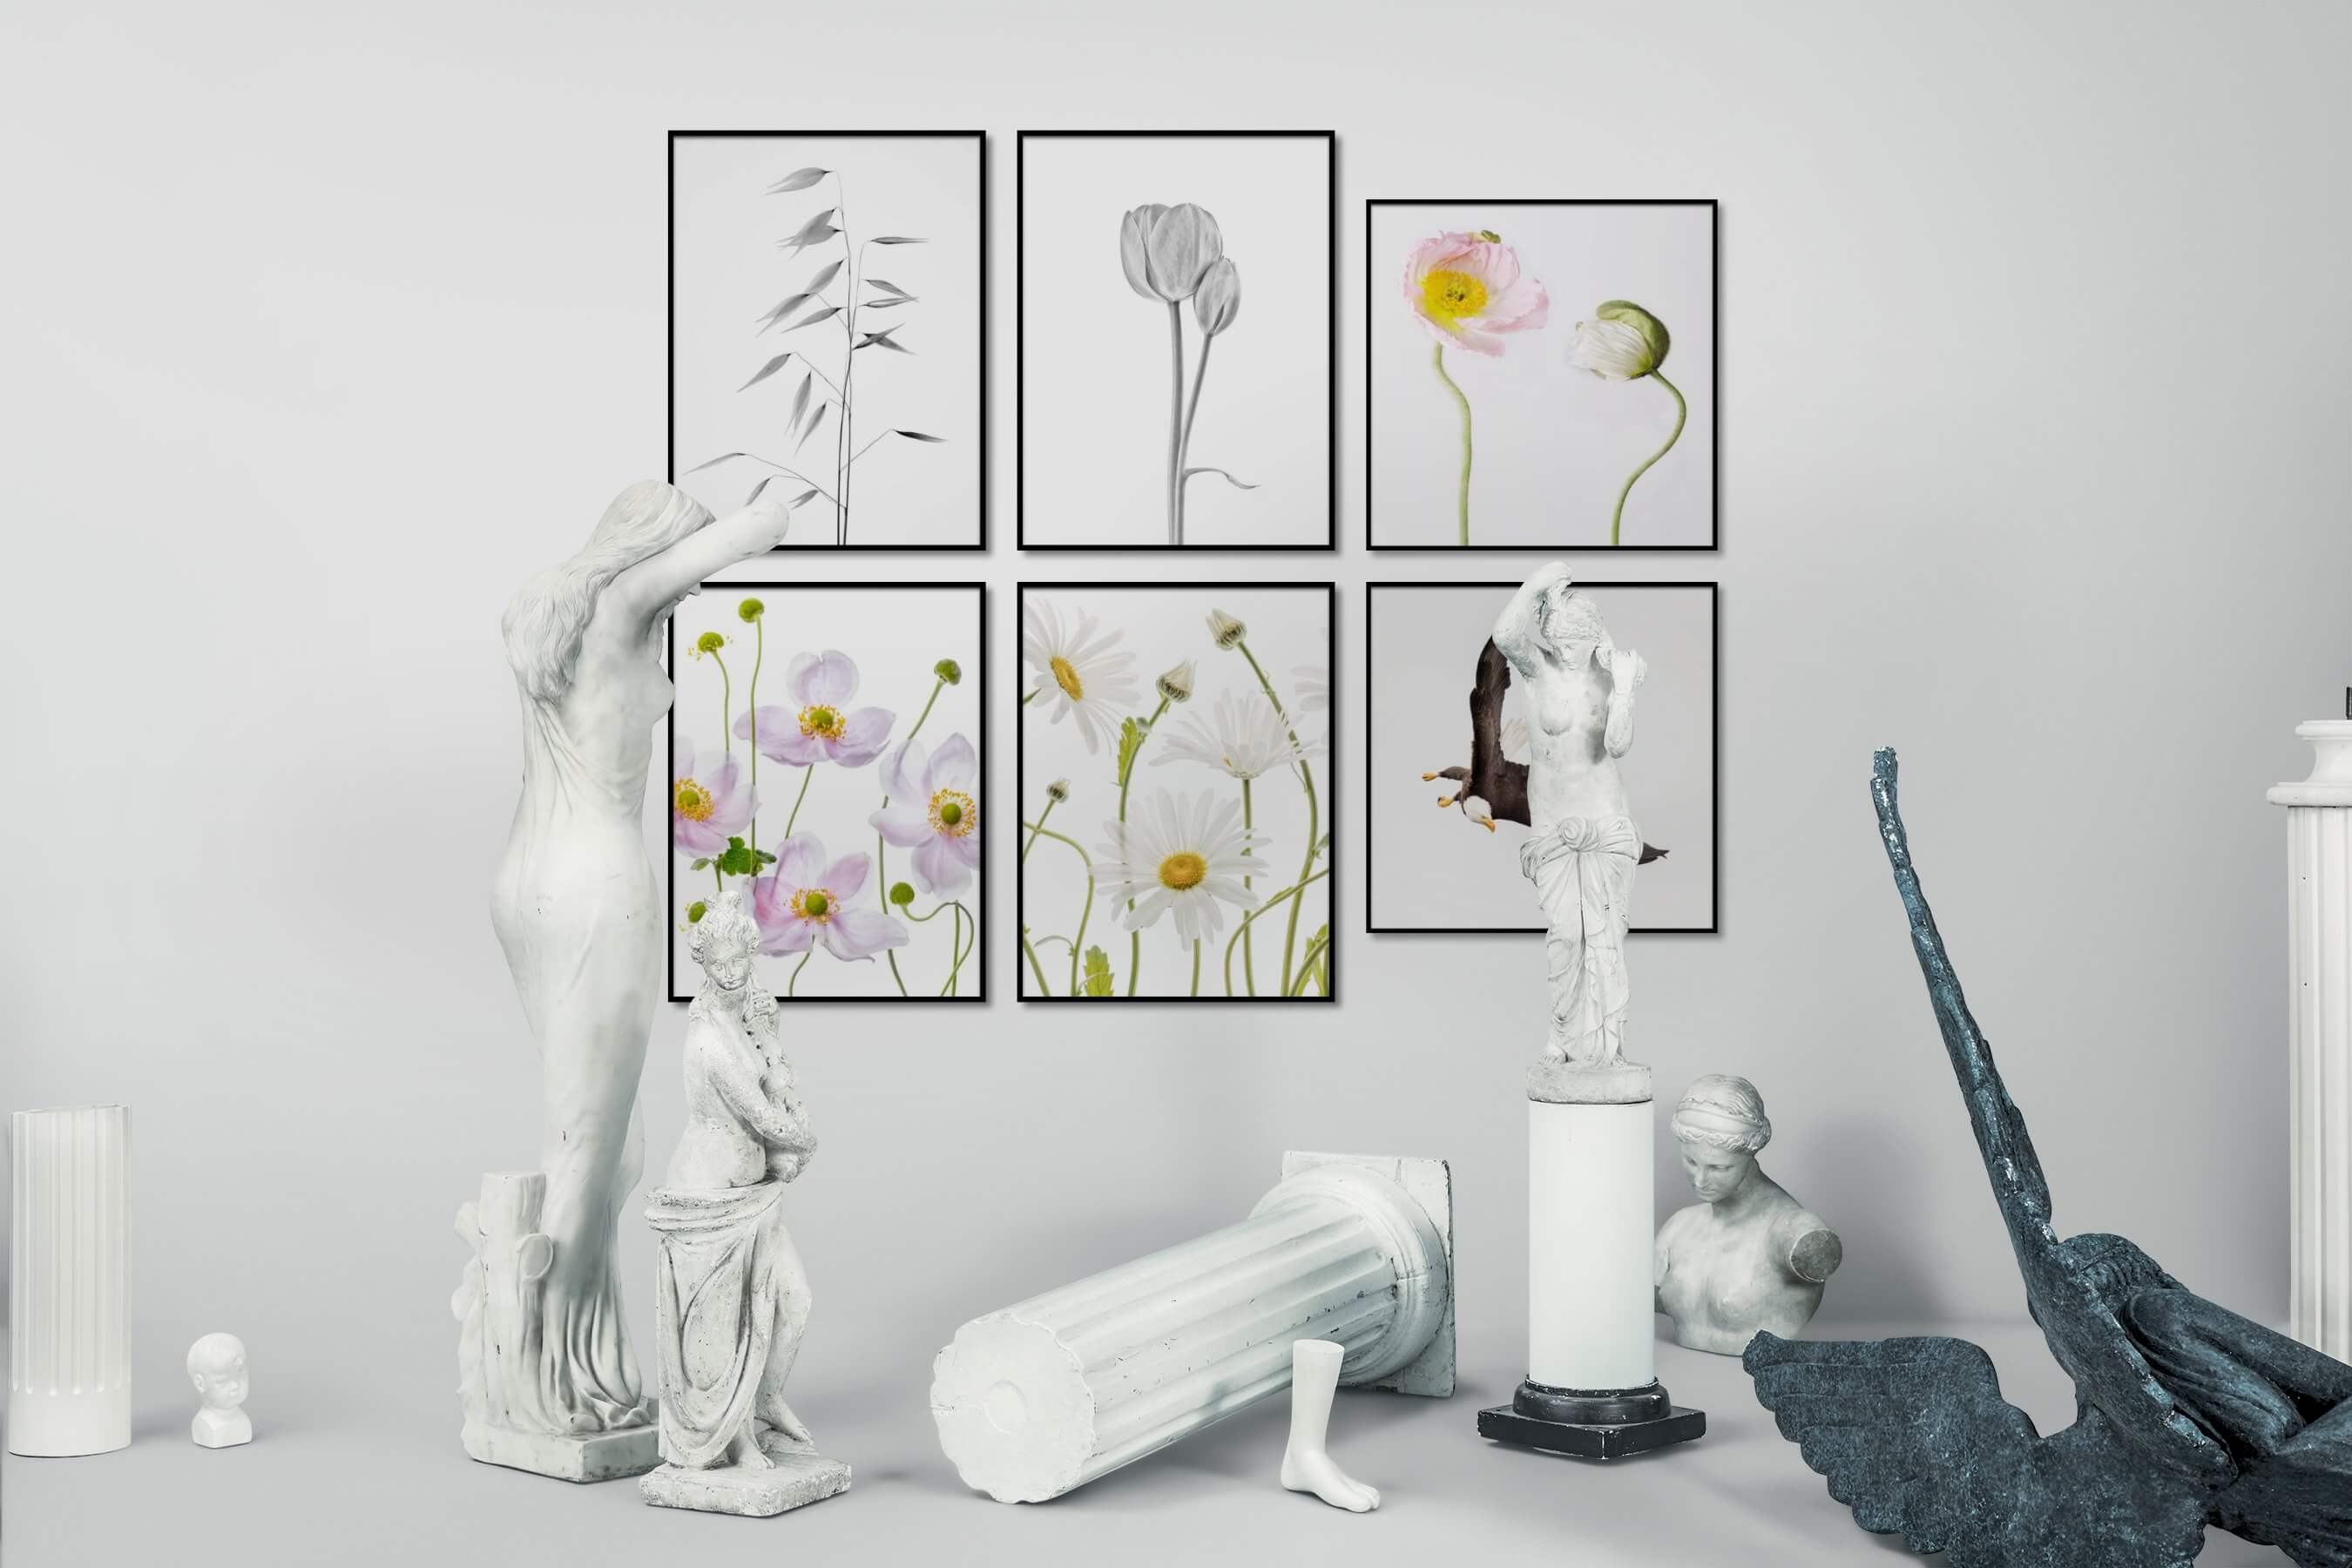 Gallery wall idea with six framed pictures arranged on a wall depicting Black & White, Bright Tones, For the Minimalist, Flowers & Plants, Mindfulness, Vintage, For the Moderate, Animals, and Americana